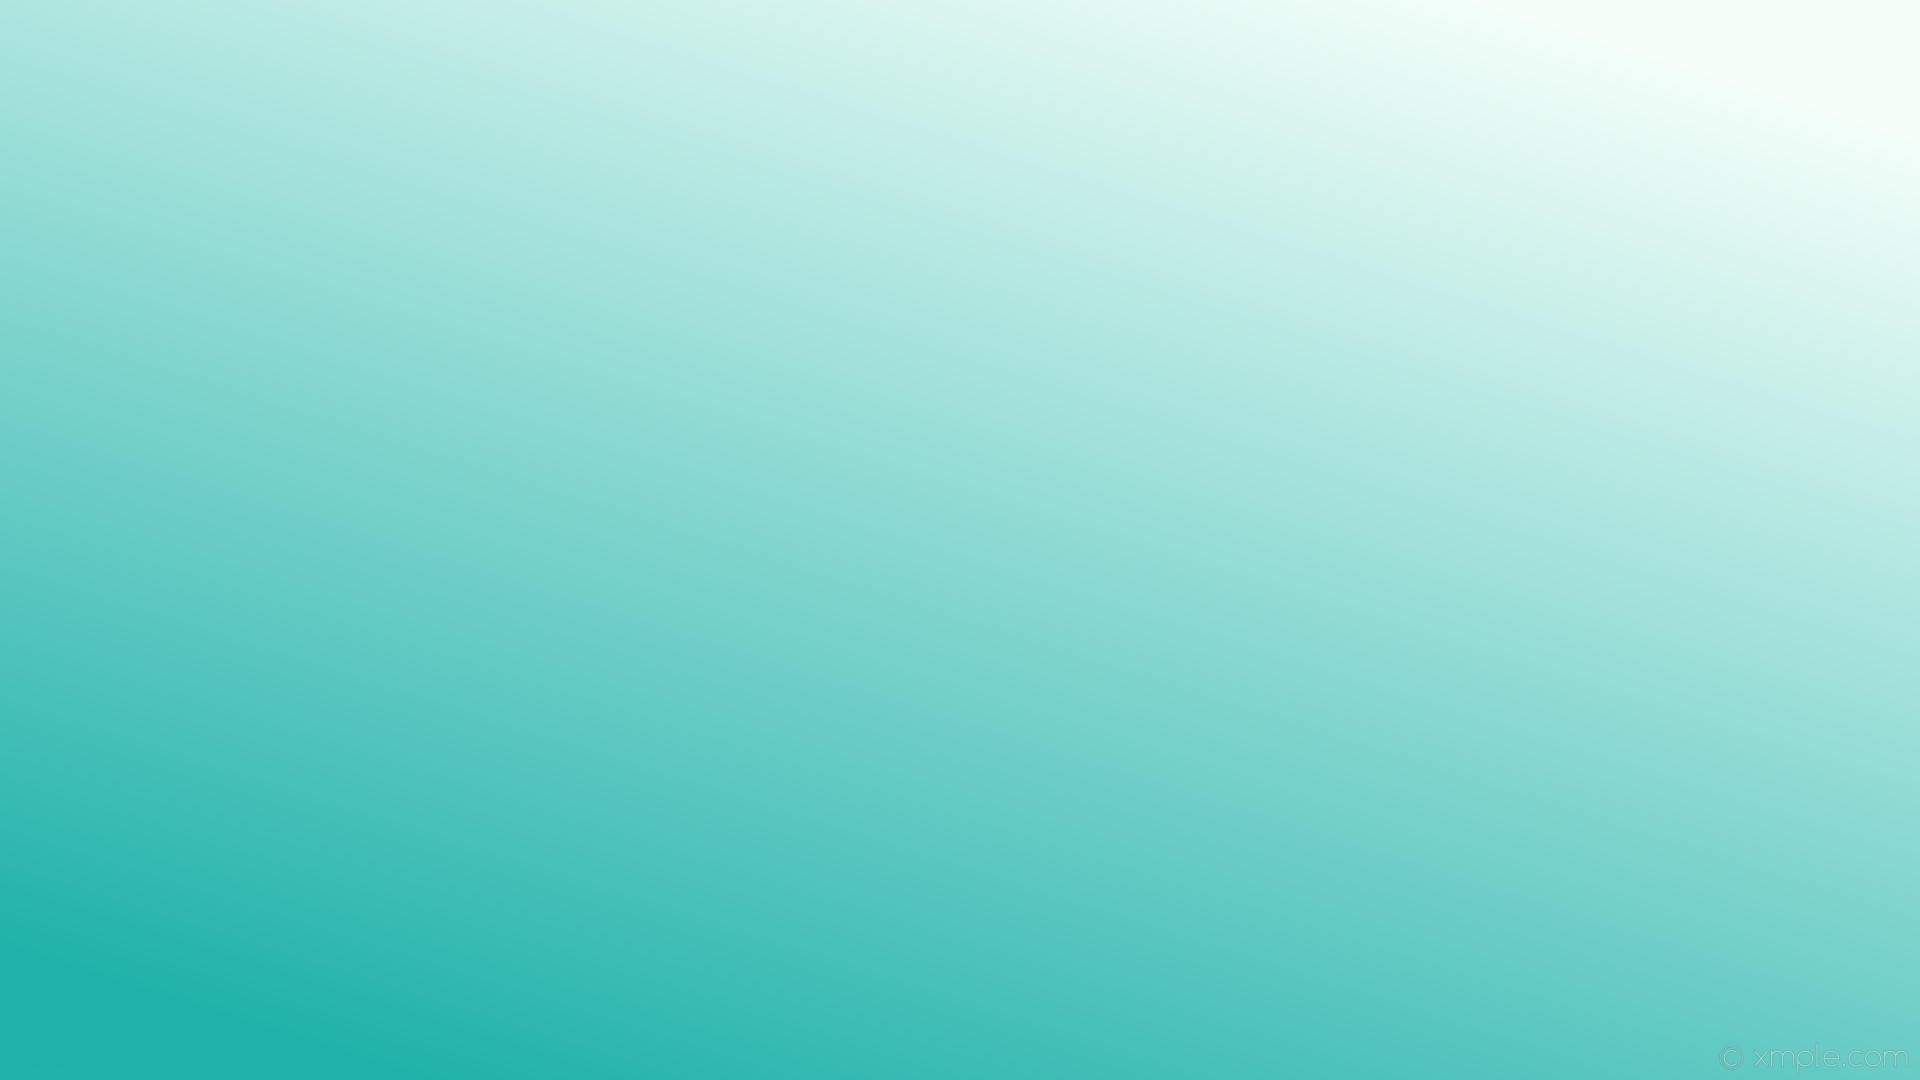 1920x1080 wallpaper green gradient linear white mint cream light sea green #f5fffa  #20b2aa 45°